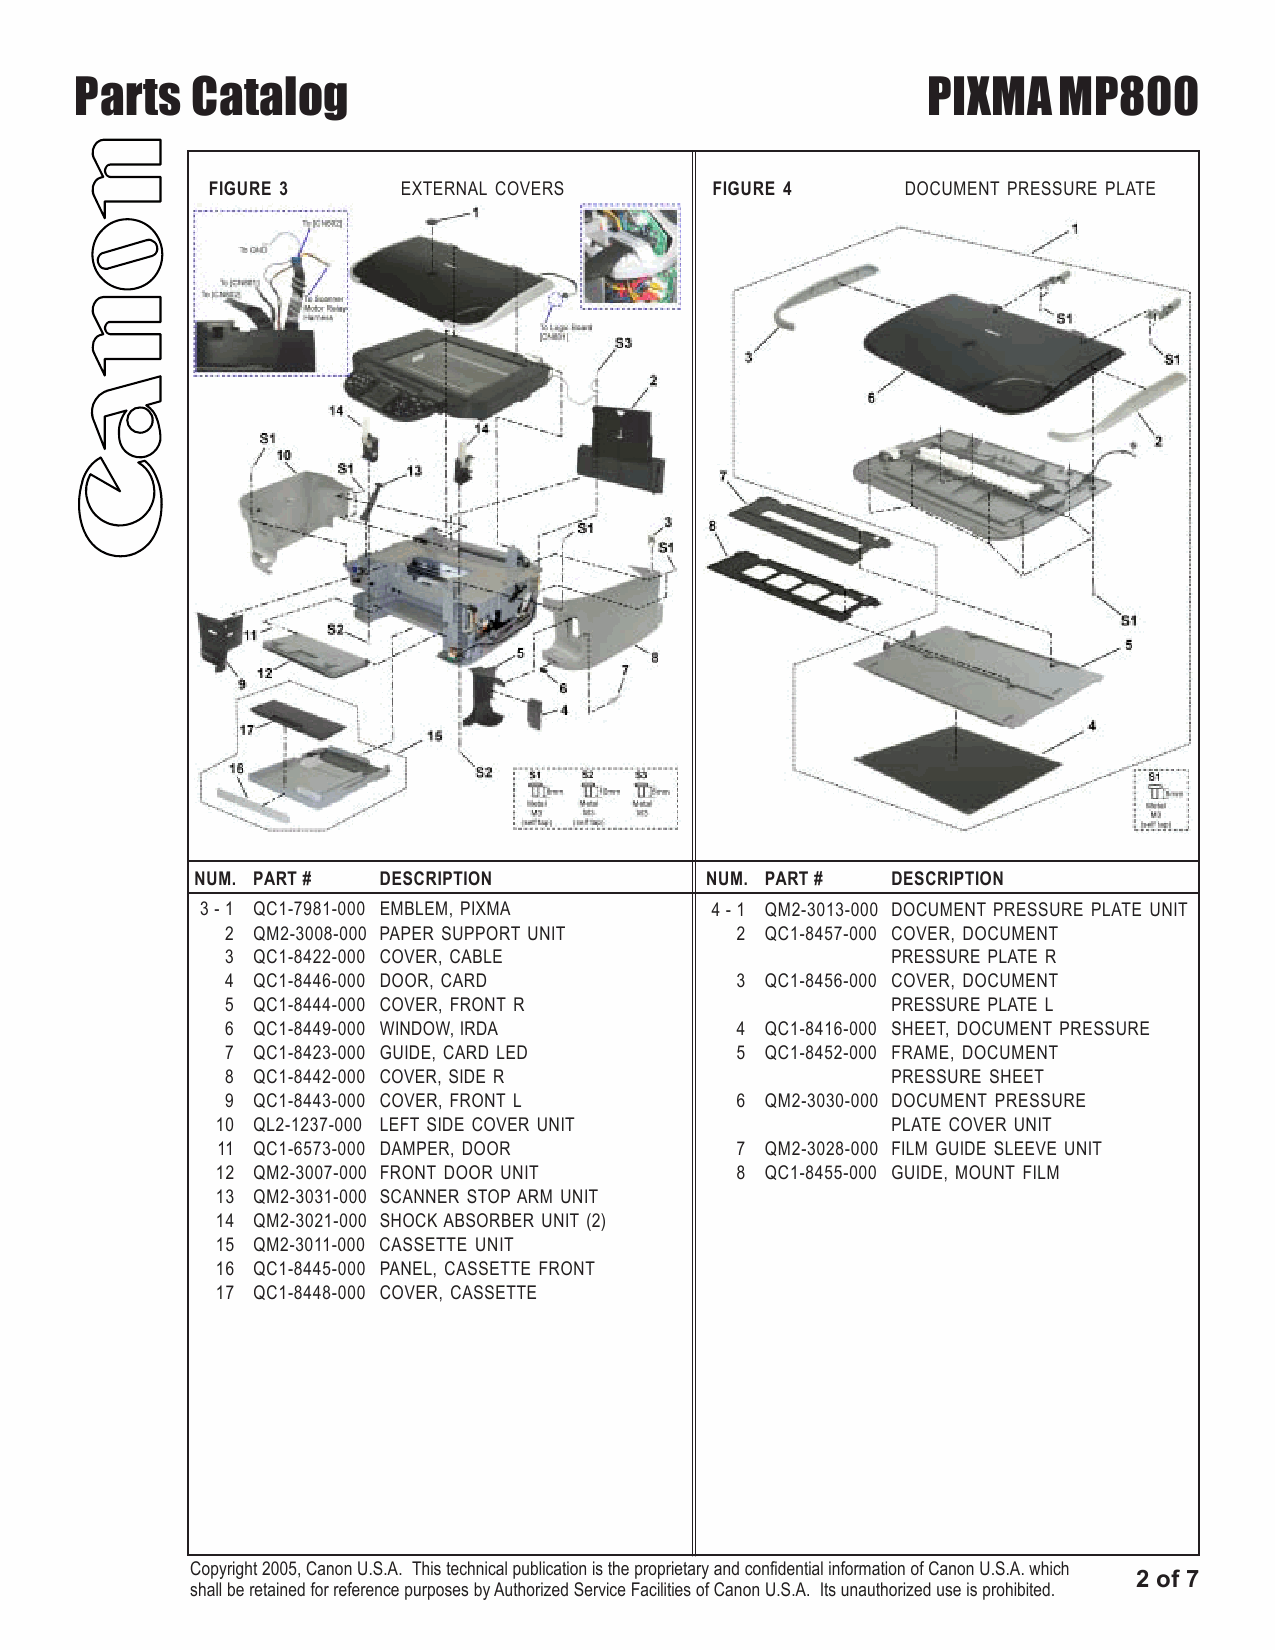 Canon PIXMA MP800 Parts Catalog Manual-3